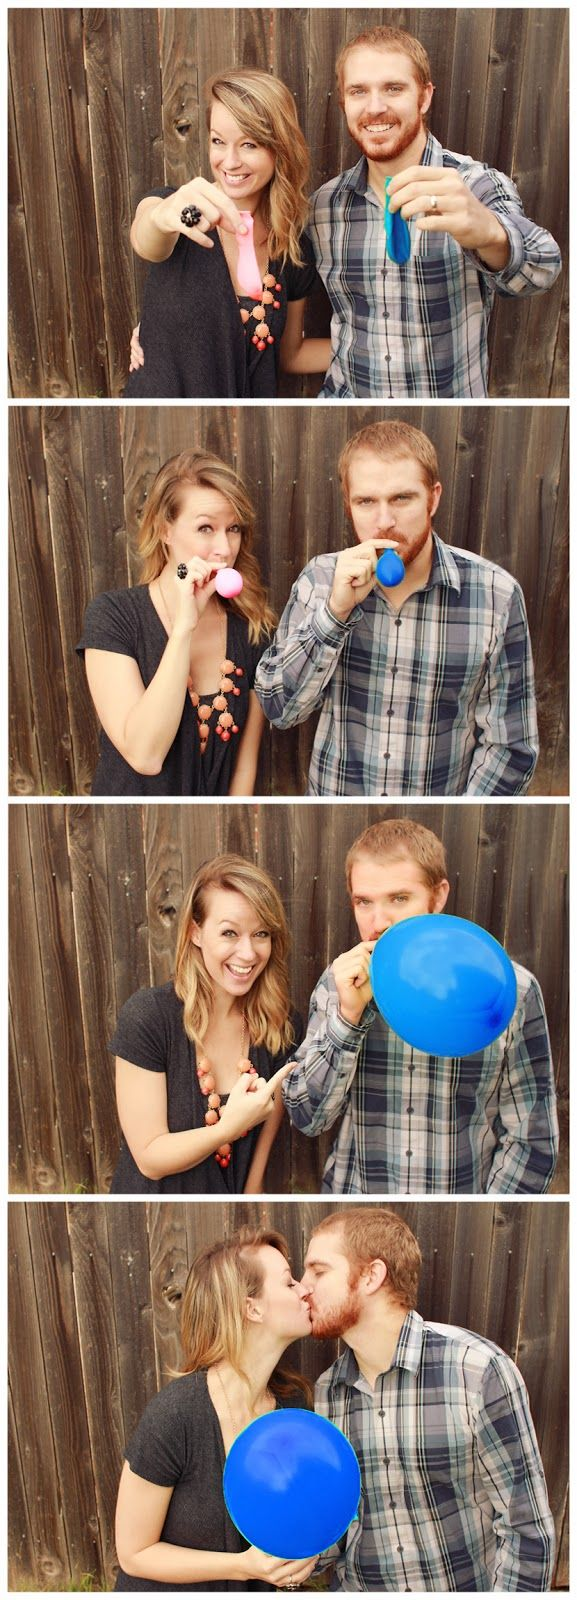 16 Weeks with Baby #2 - Gender Reveal Idea Balloons   Keeping Up With The Morgans